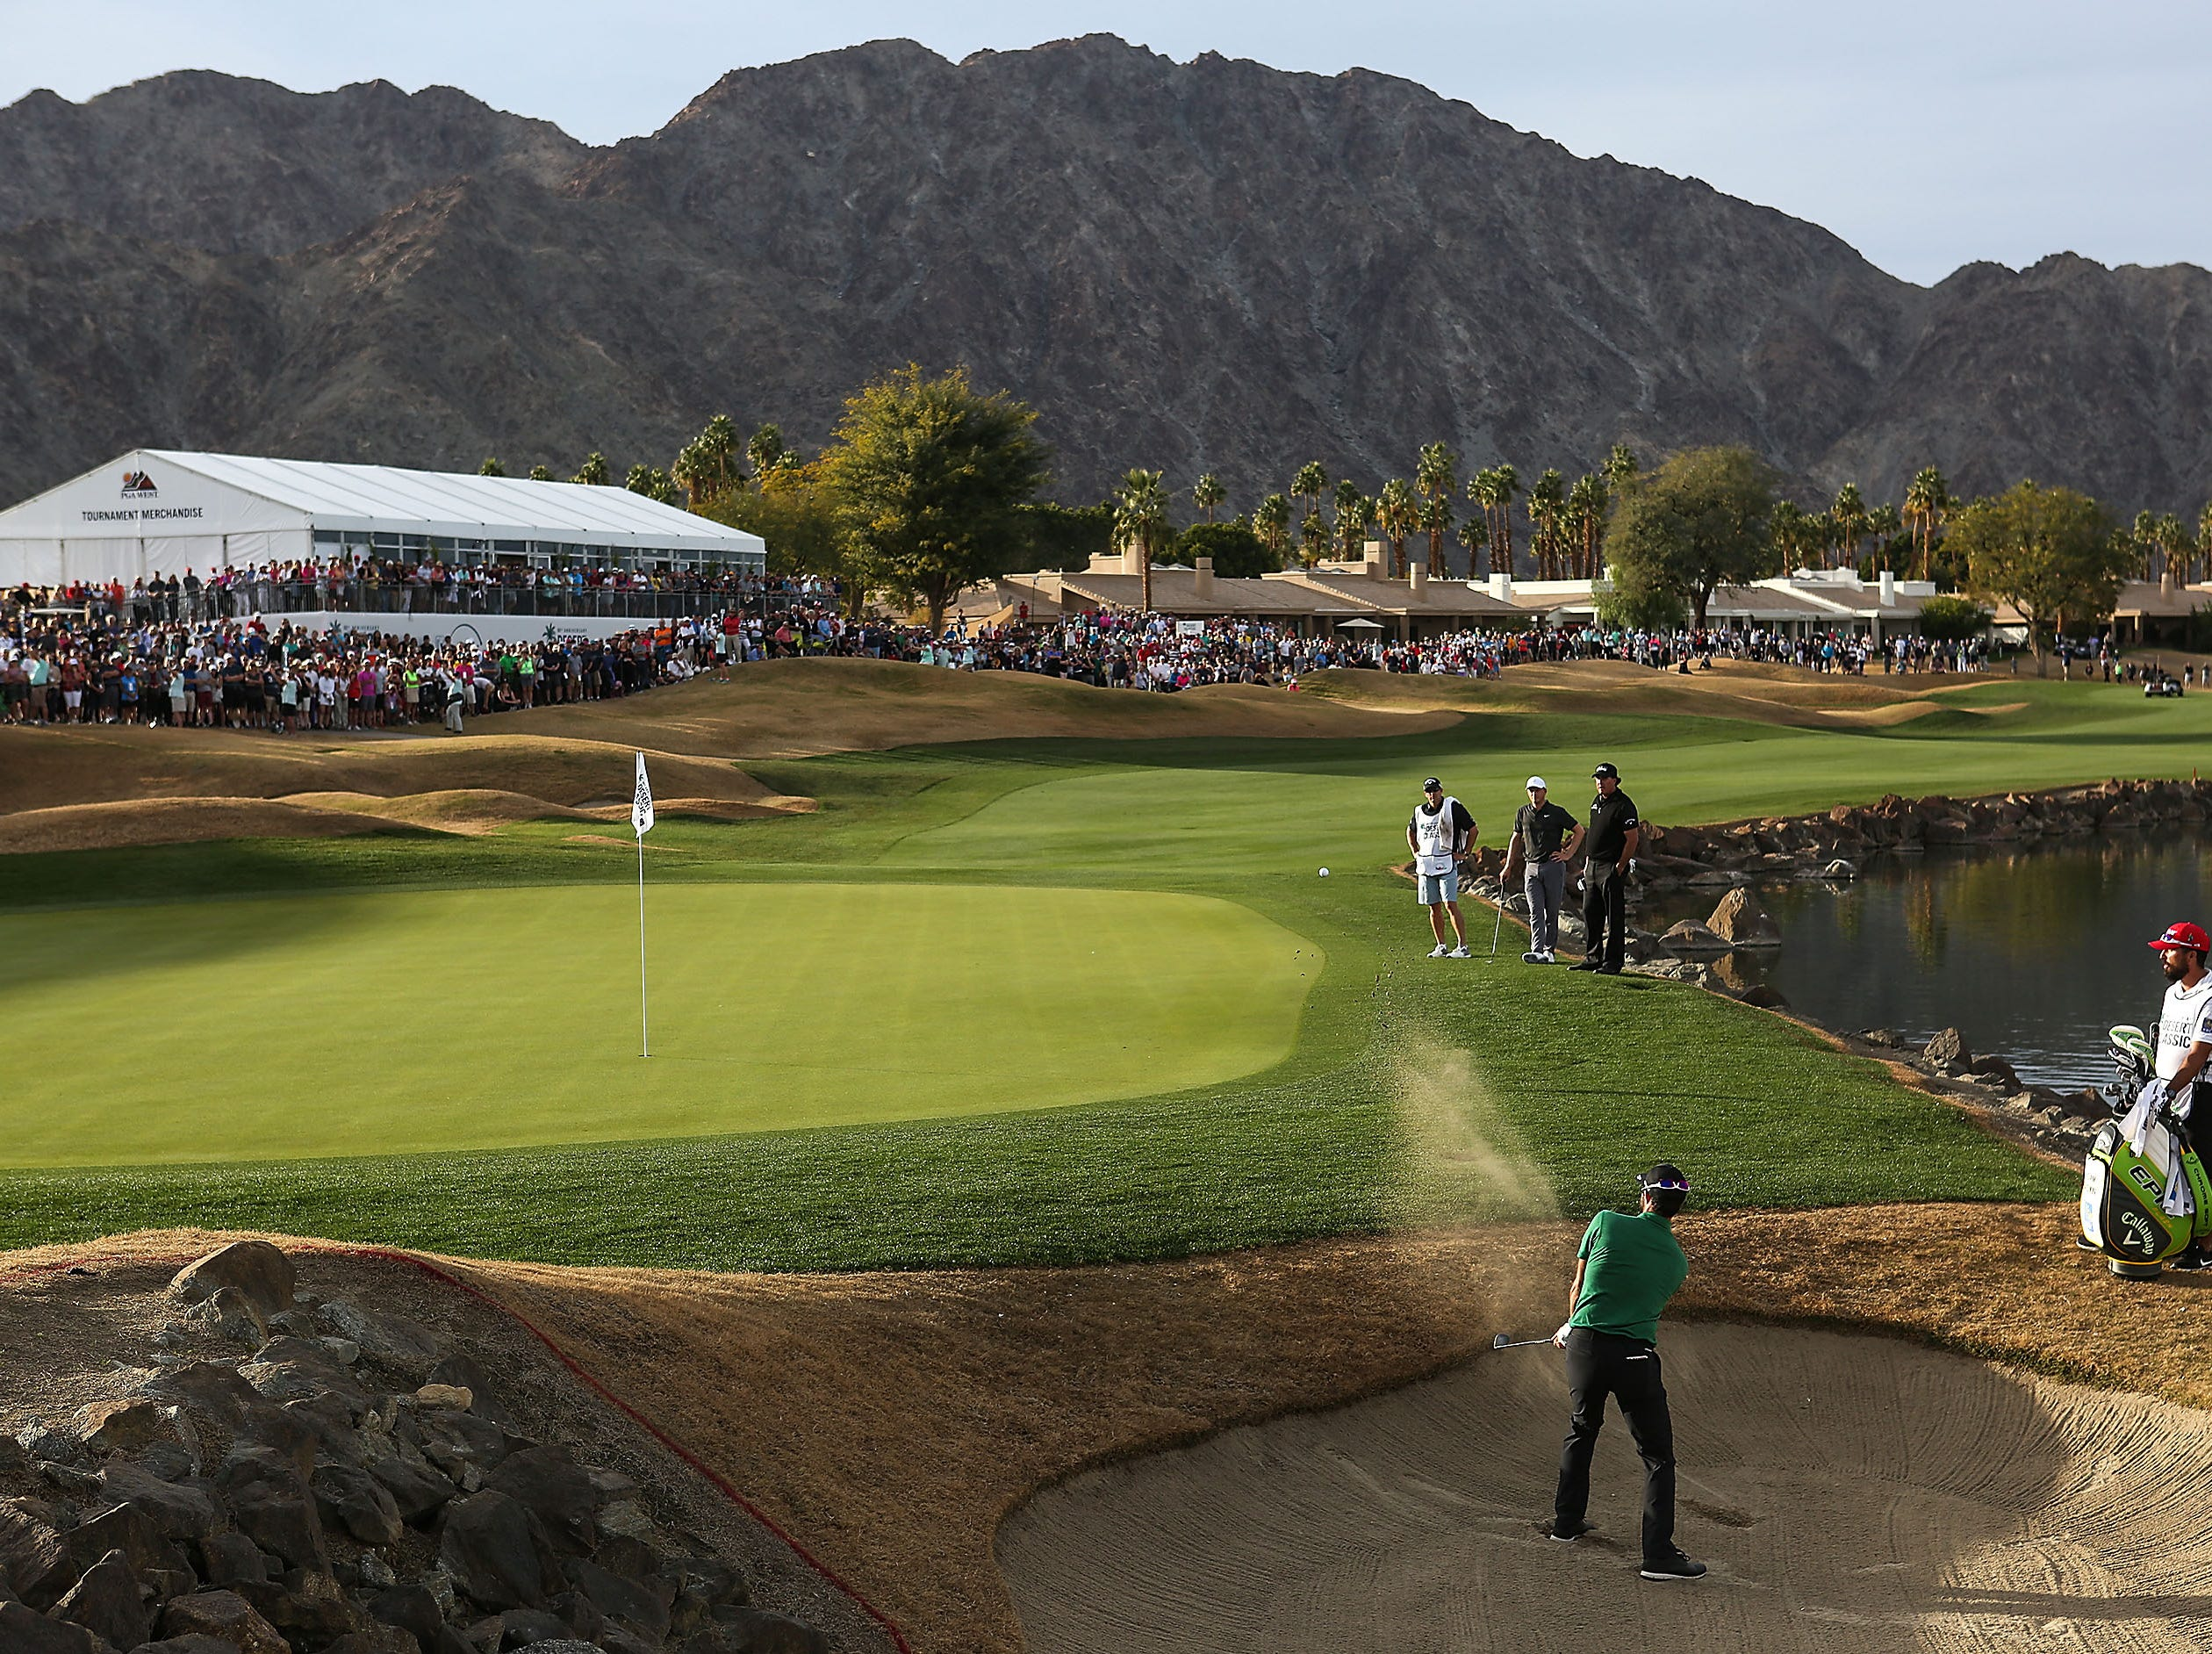 Adam Hadwin hits out of the bunker on the 18th hole of the Stadium Course at PGA West during the Desert Classic, January 20, 2019.